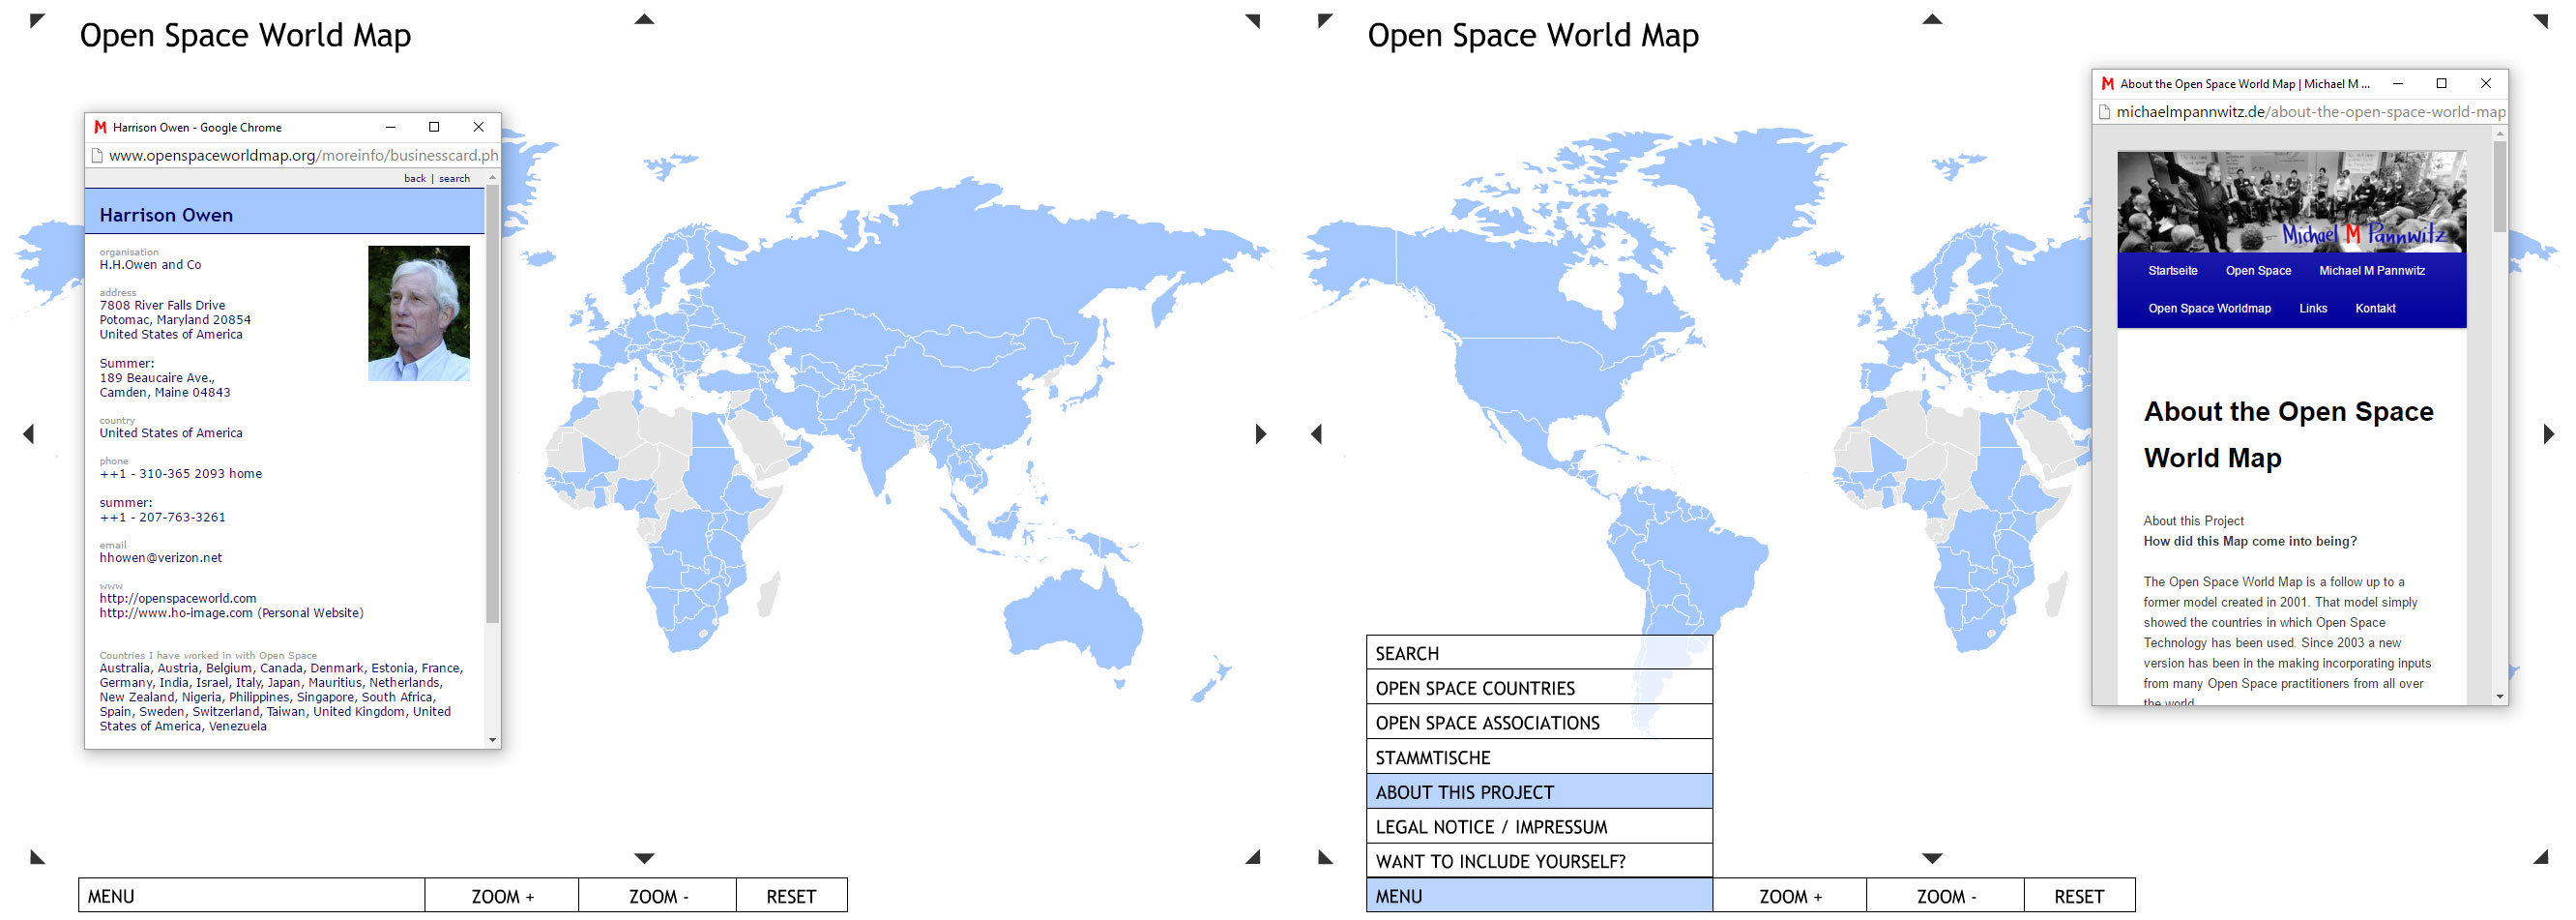 Oswmaboutg in 2015 the map comprised more than 400 open space workers in over 140 countries in addition to their contact details links to more than 200 web sites gumiabroncs